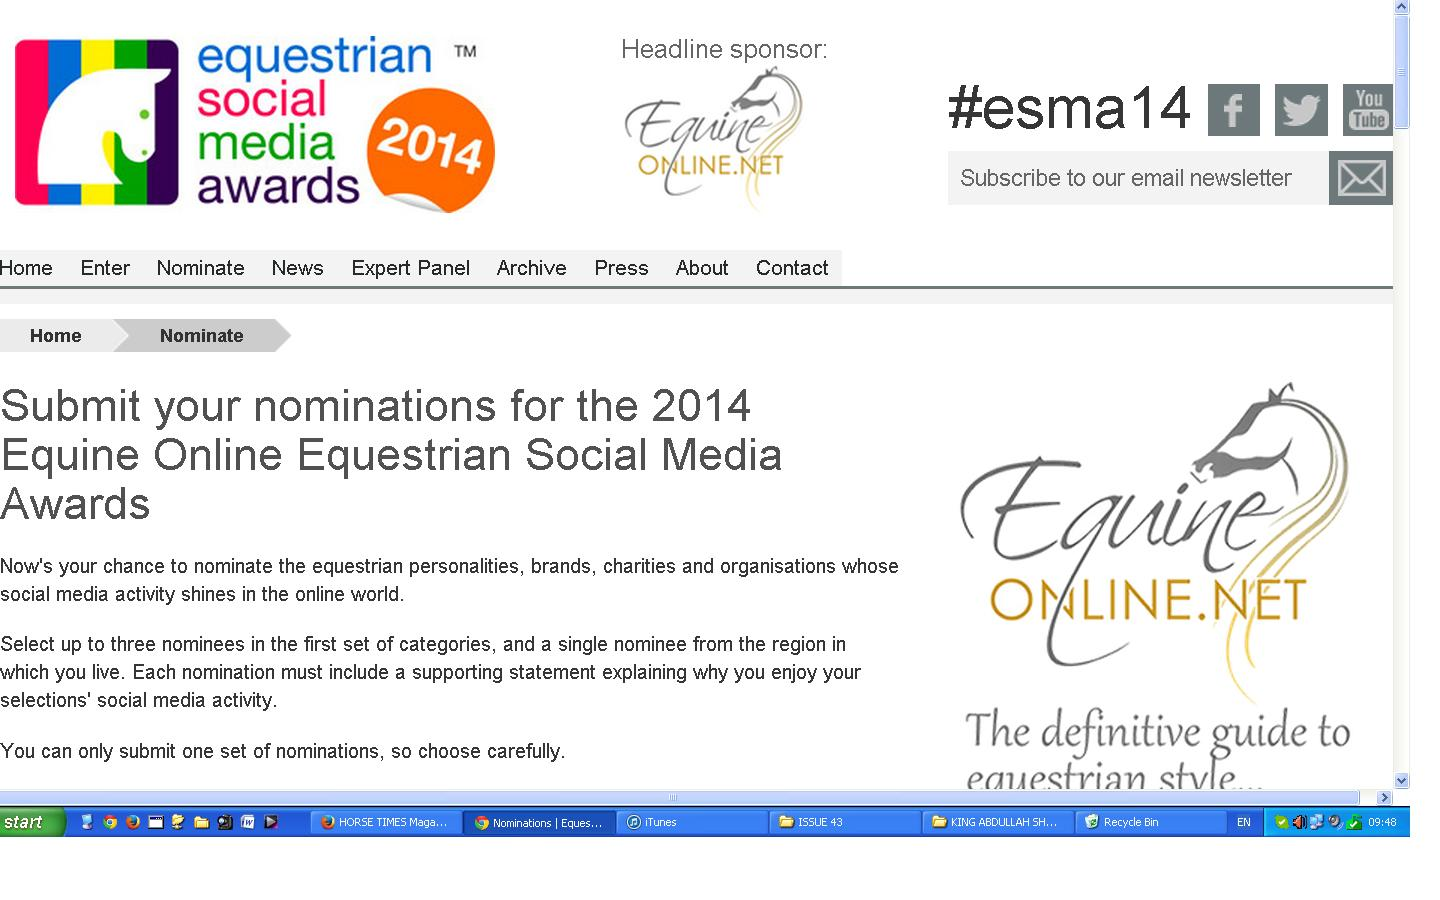 Horse Times Egypt: Equestrian Magazine :News :PUBLIC NOMINATIONS ARE NOW OPEN FOR THE 2014 EQUINE ONLINE EQUESTRIAN SOCIAL MEDIA AWARDS